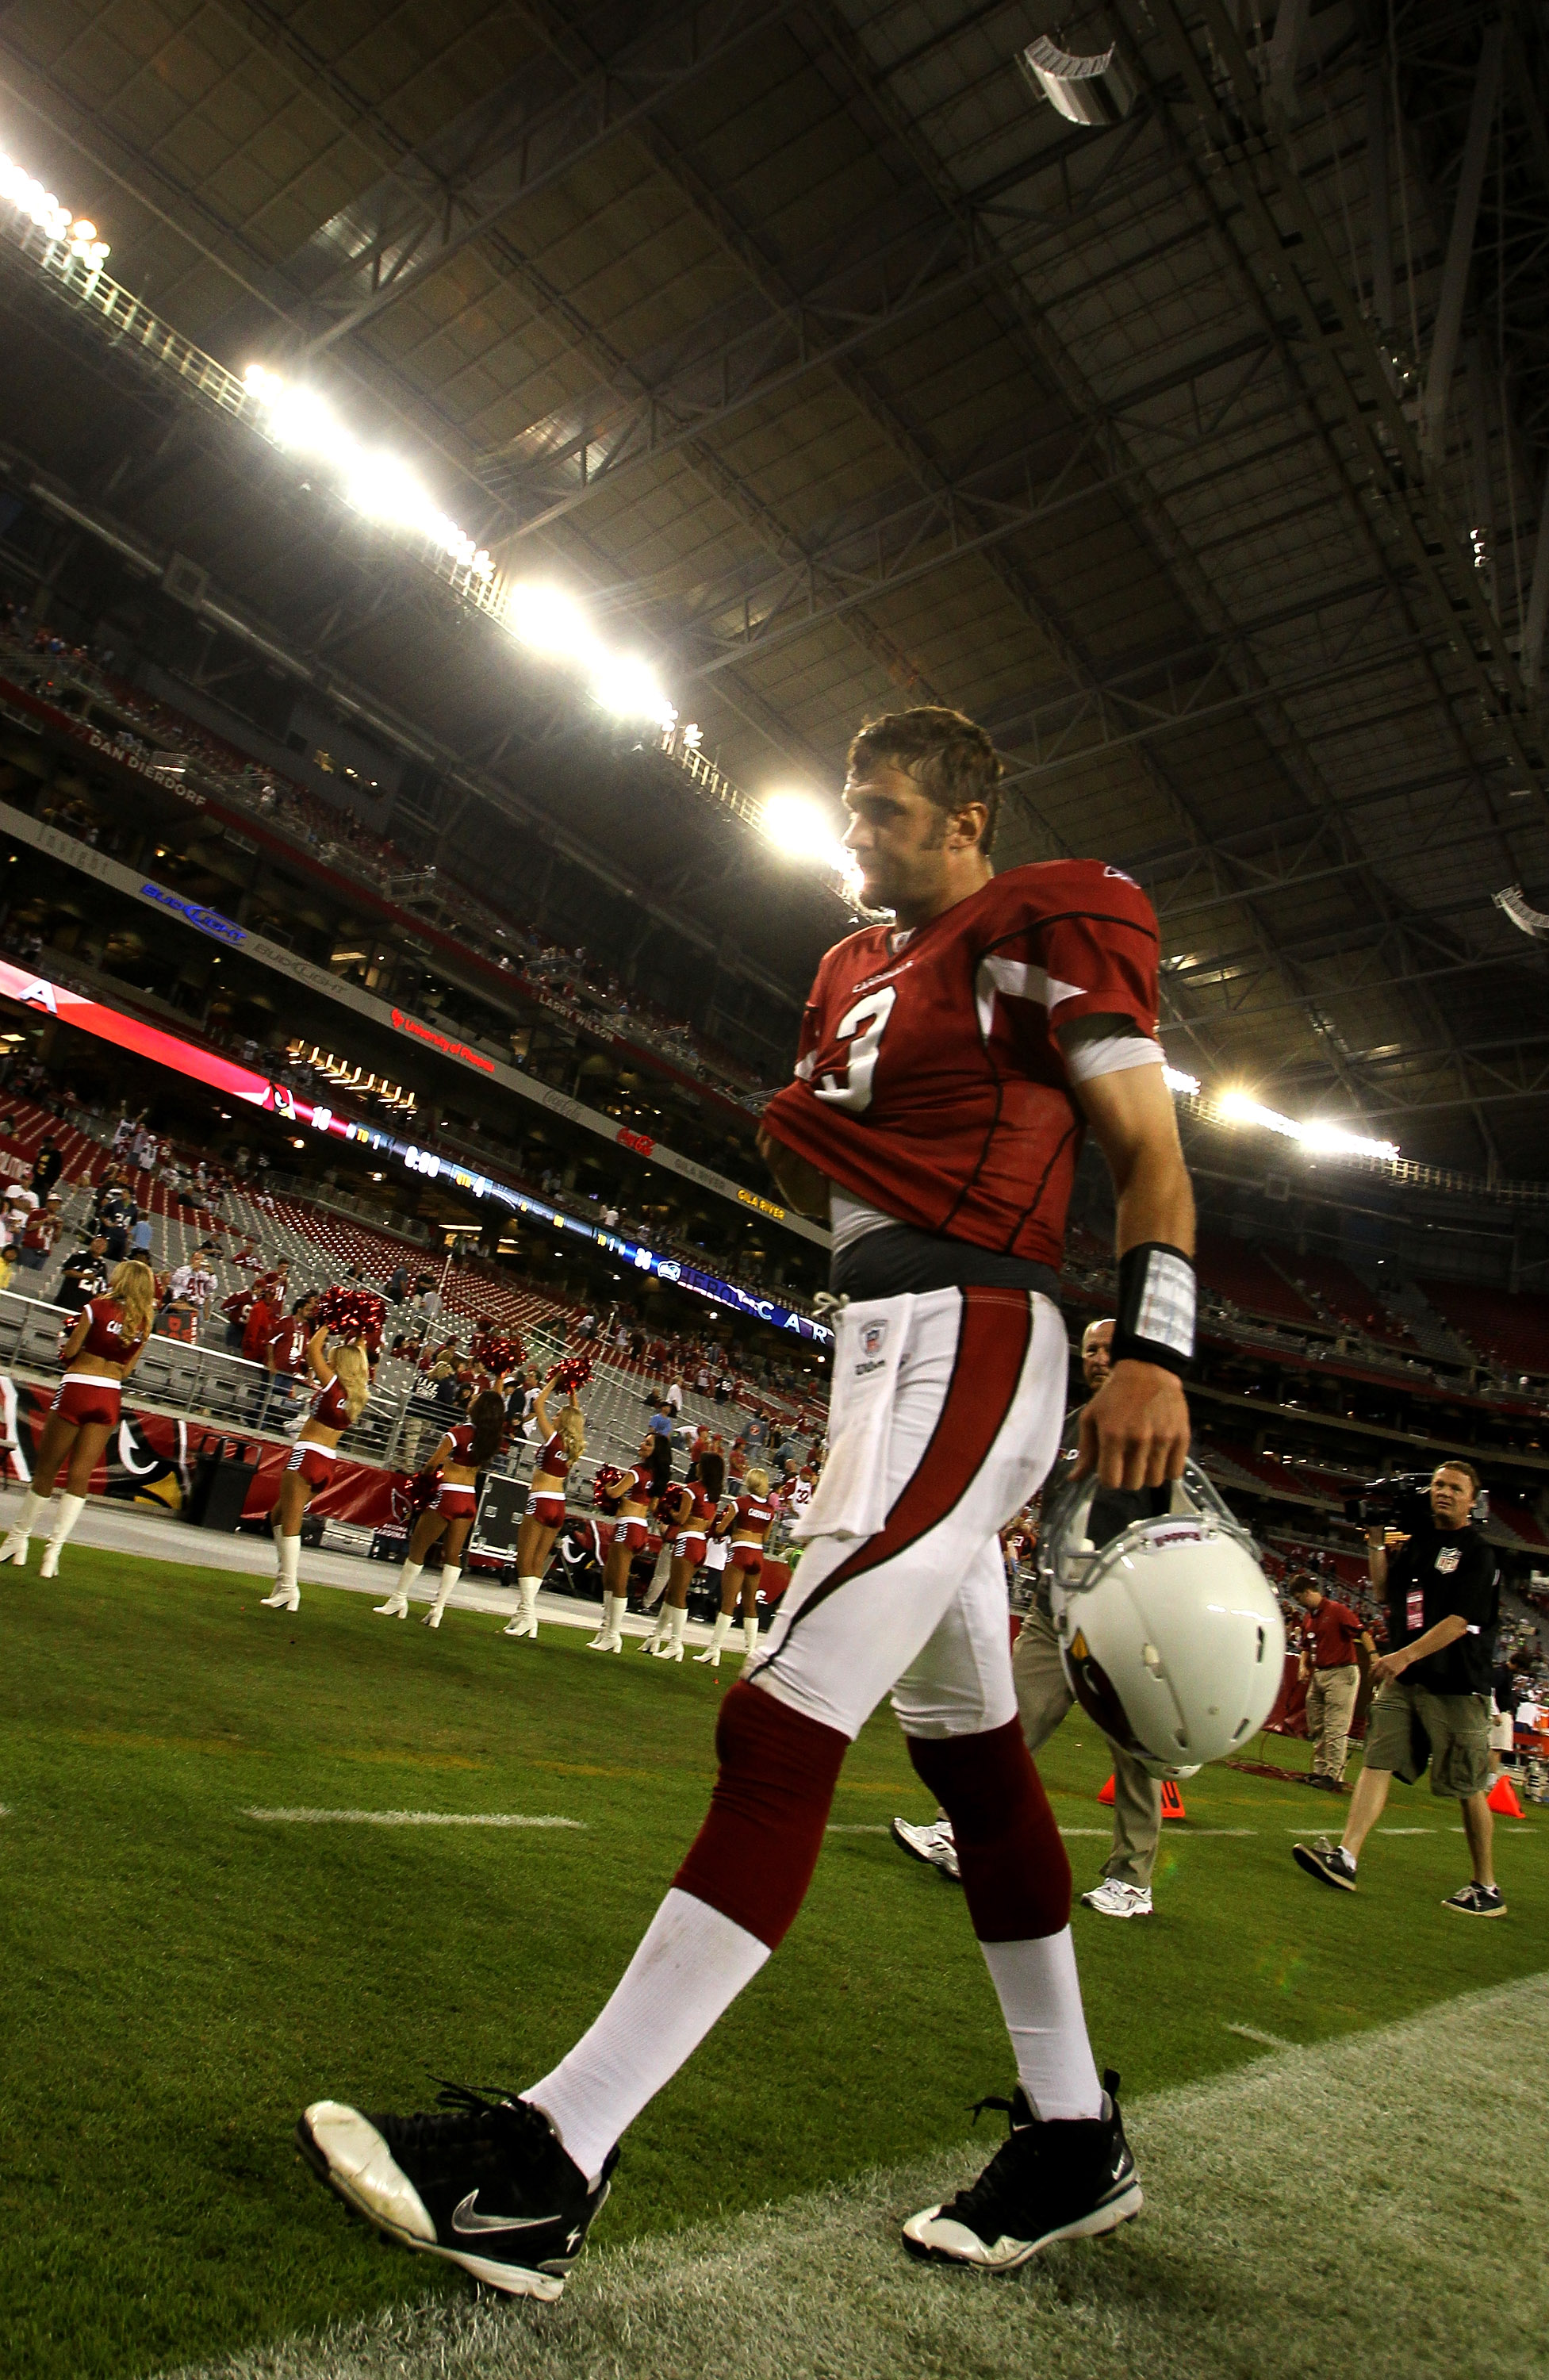 GLENDALE, AZ - NOVEMBER 14:  Quarterback Derek Anderson #3 of the Arizona Cardinals walks off the field after the game with the Seattle Seahawks at University of Phoenix Stadium on November 14, 2010 in Glendale, Arizona. Seattle won 36-18.  (Photo by Step